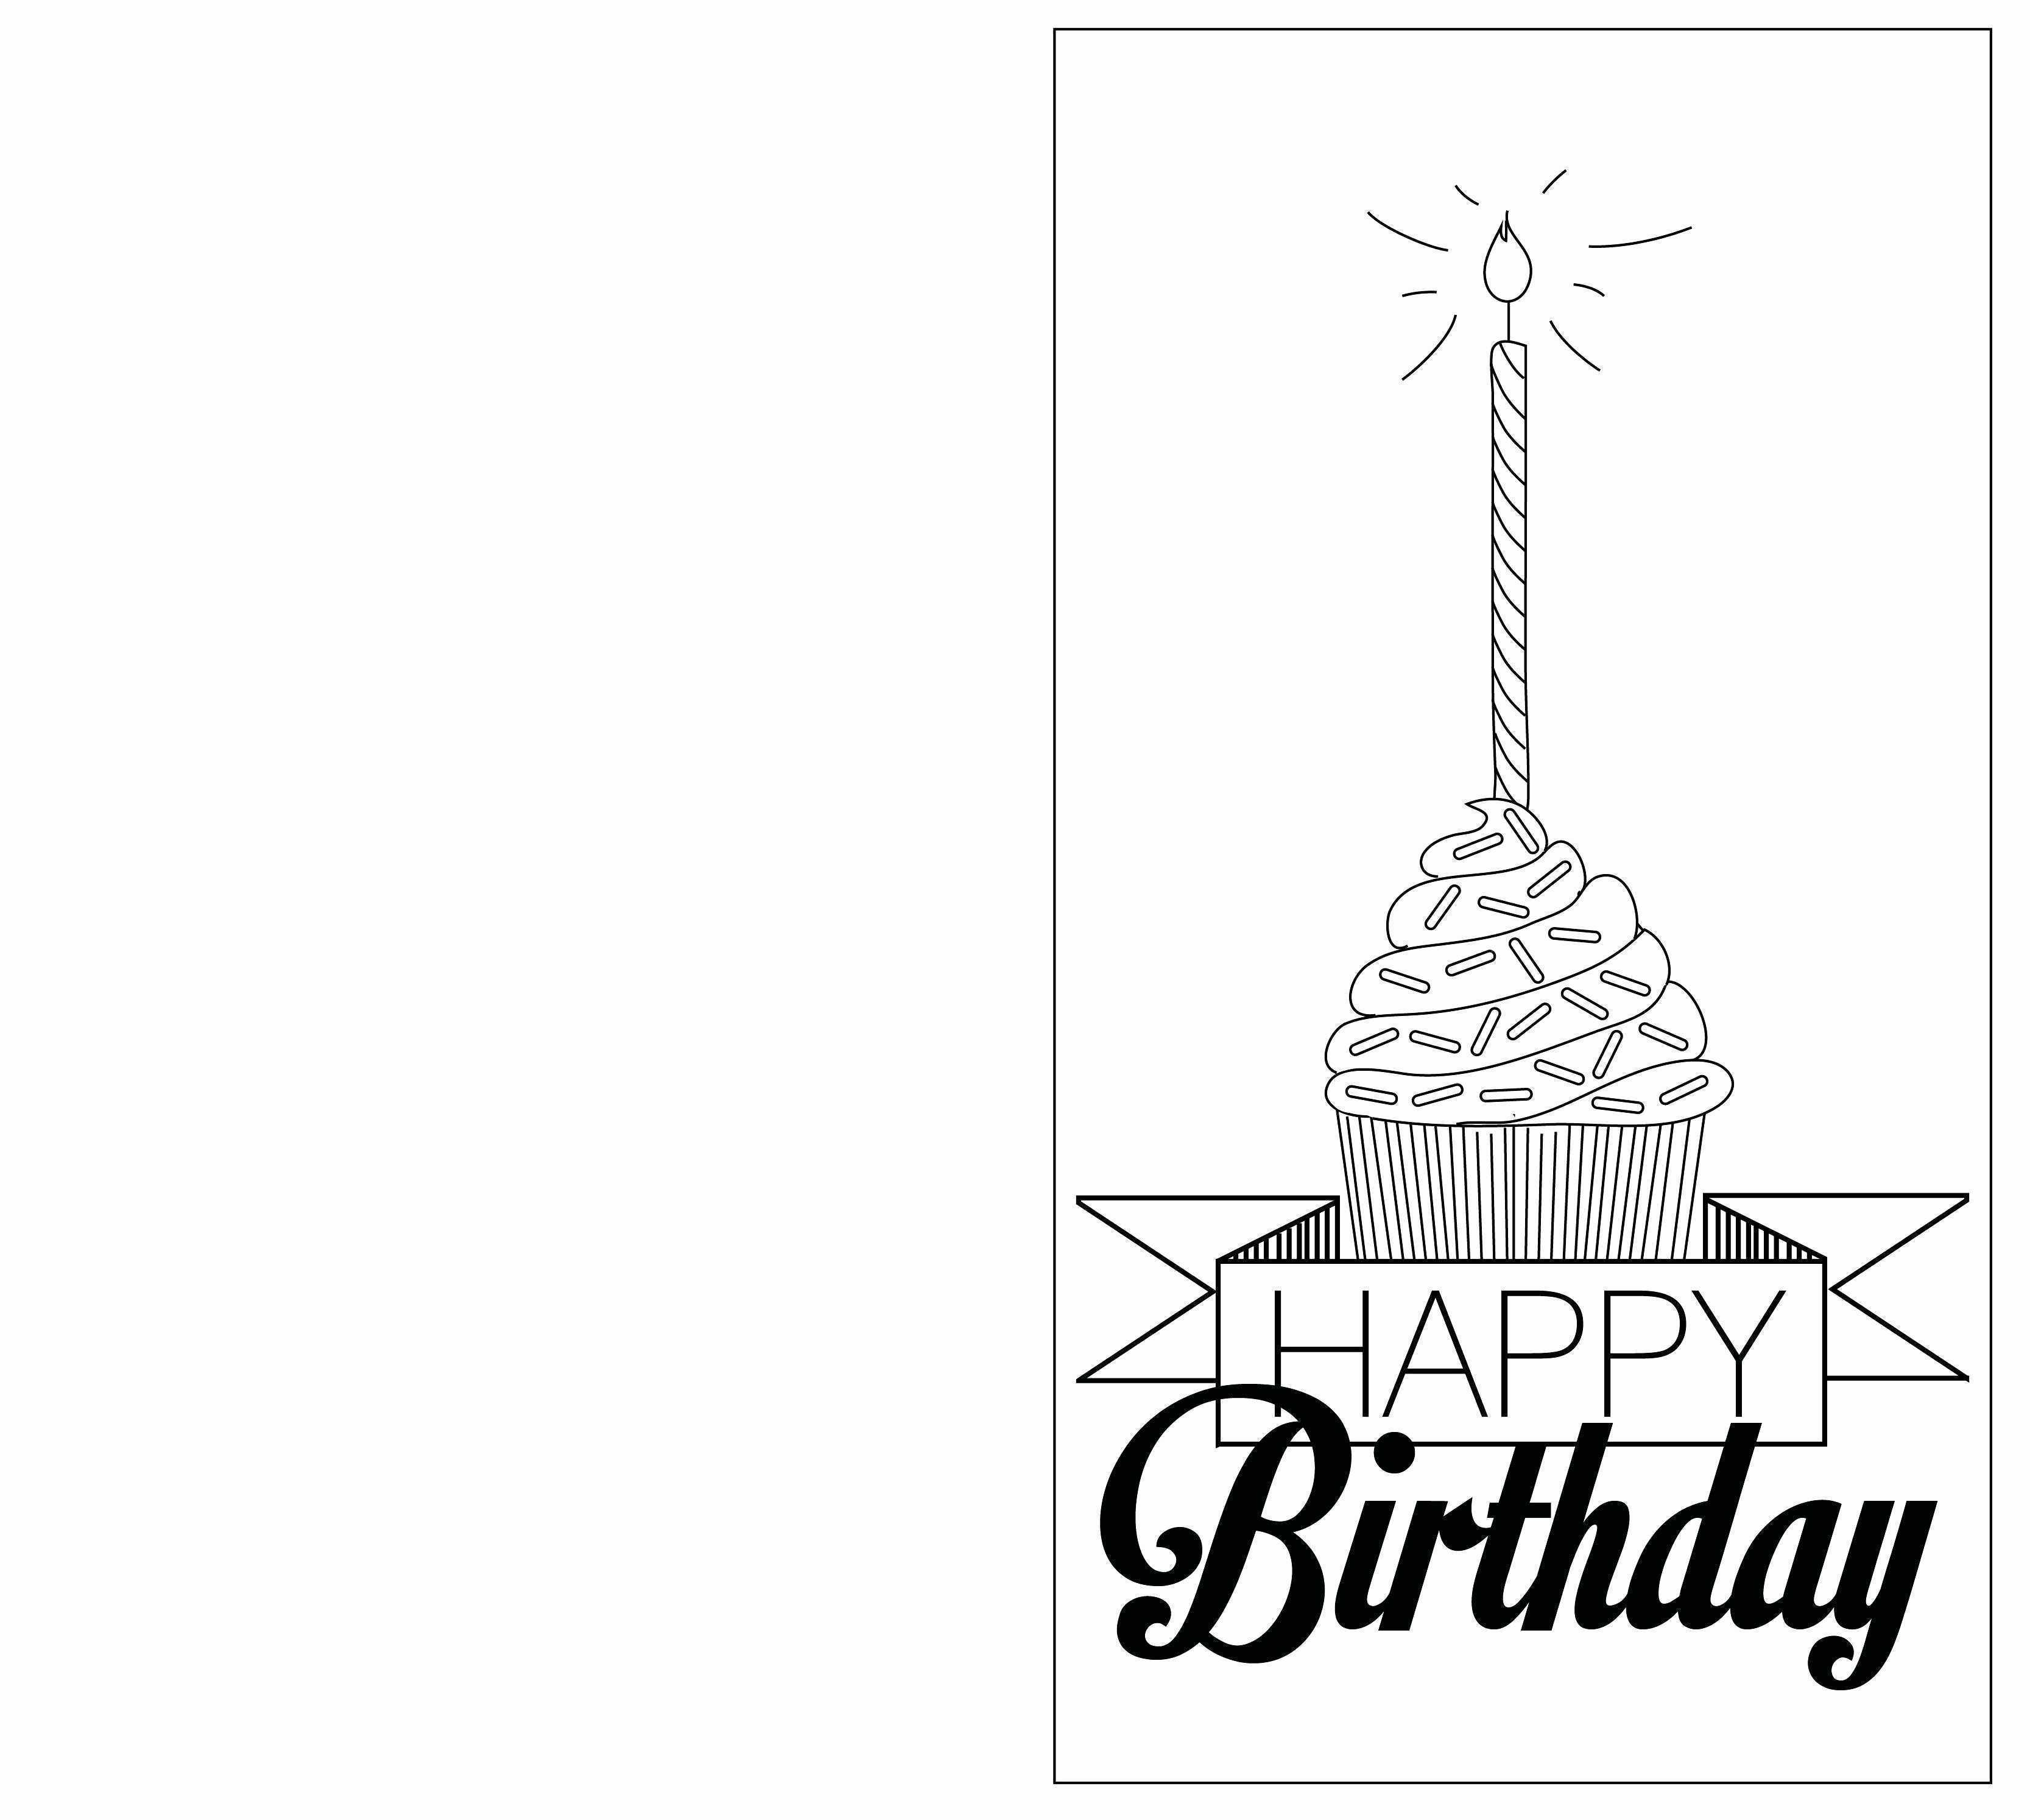 print off birthday cards ; print-out-birthday-card-unique-free-printable-black-and-white-happy-birthday-cards-of-print-out-birthday-card